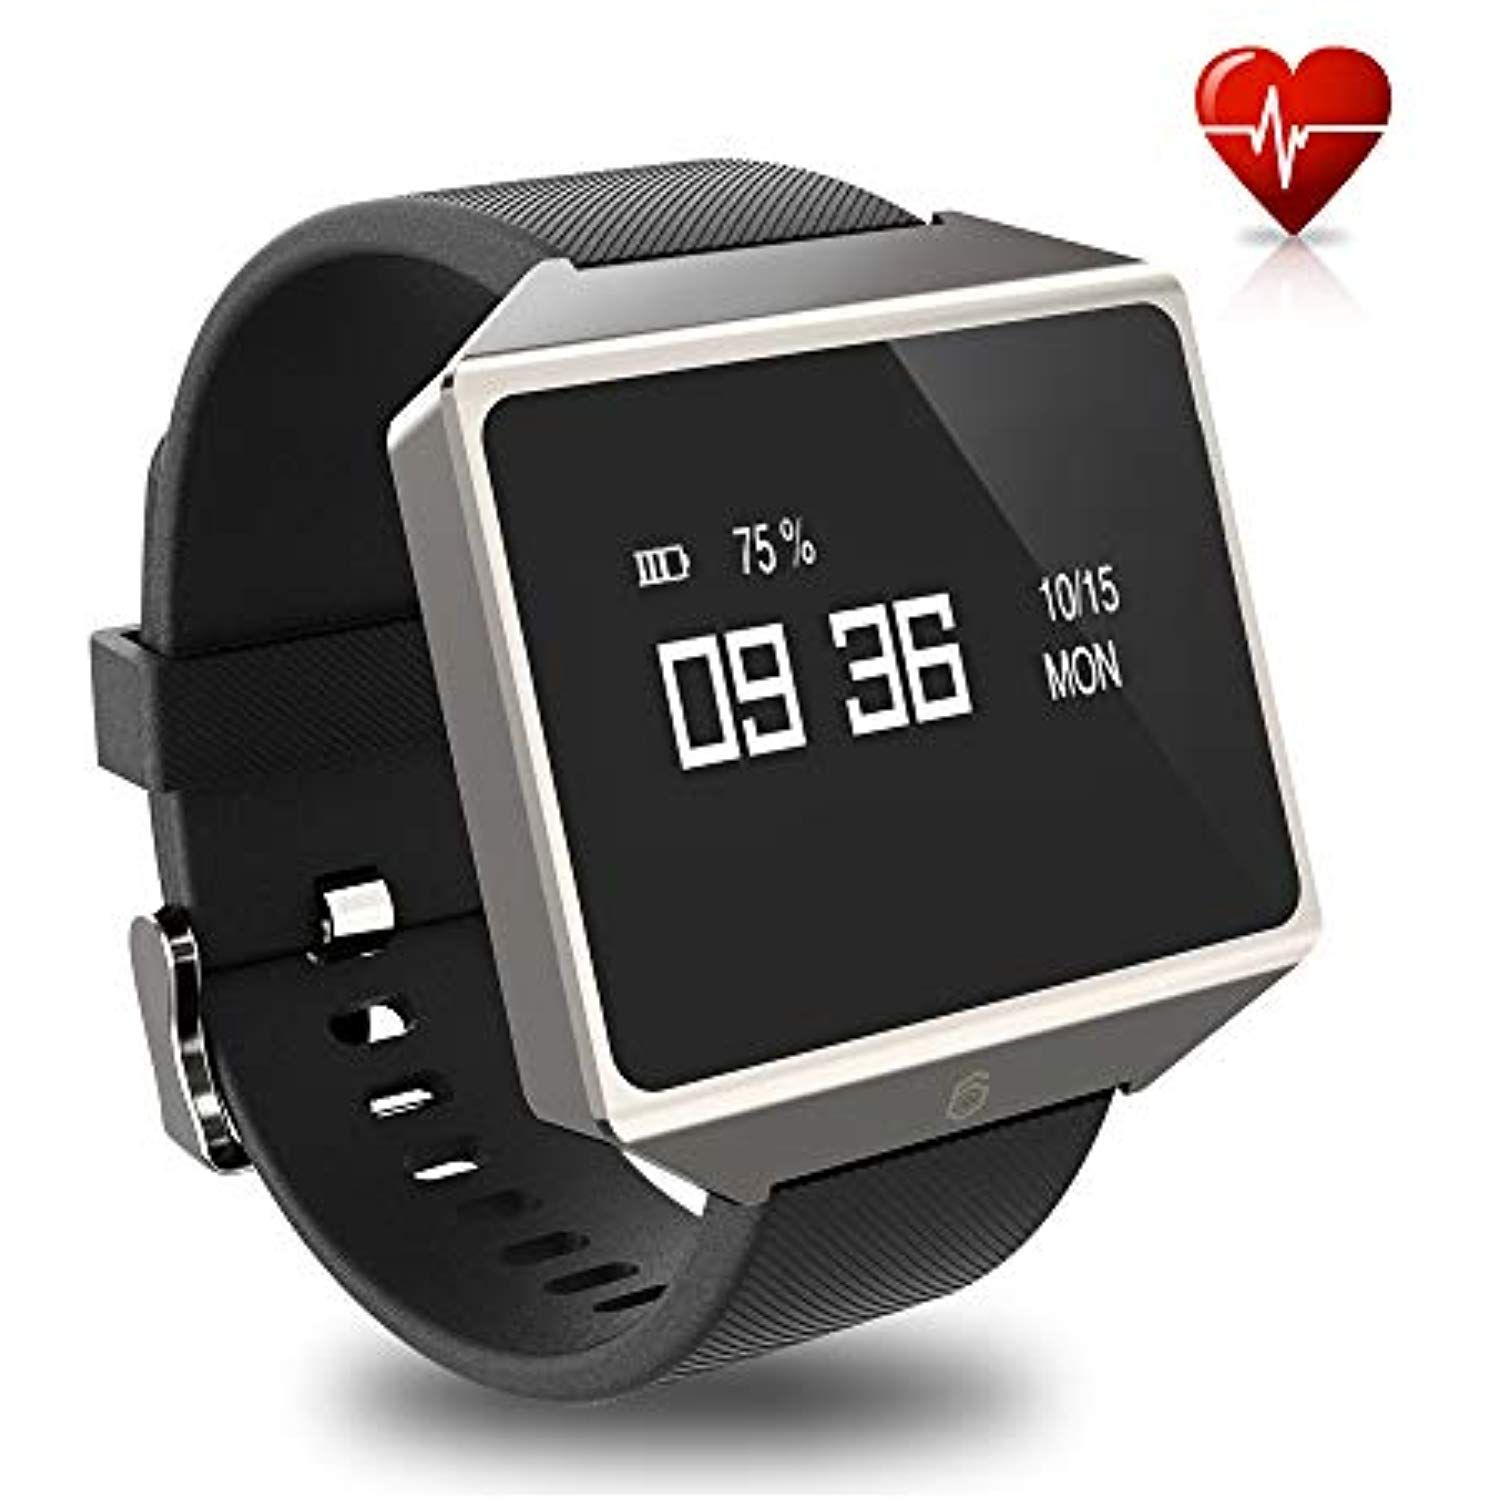 GFiD Smart Watch with ECG PPG,Health Fitness Heart Rate